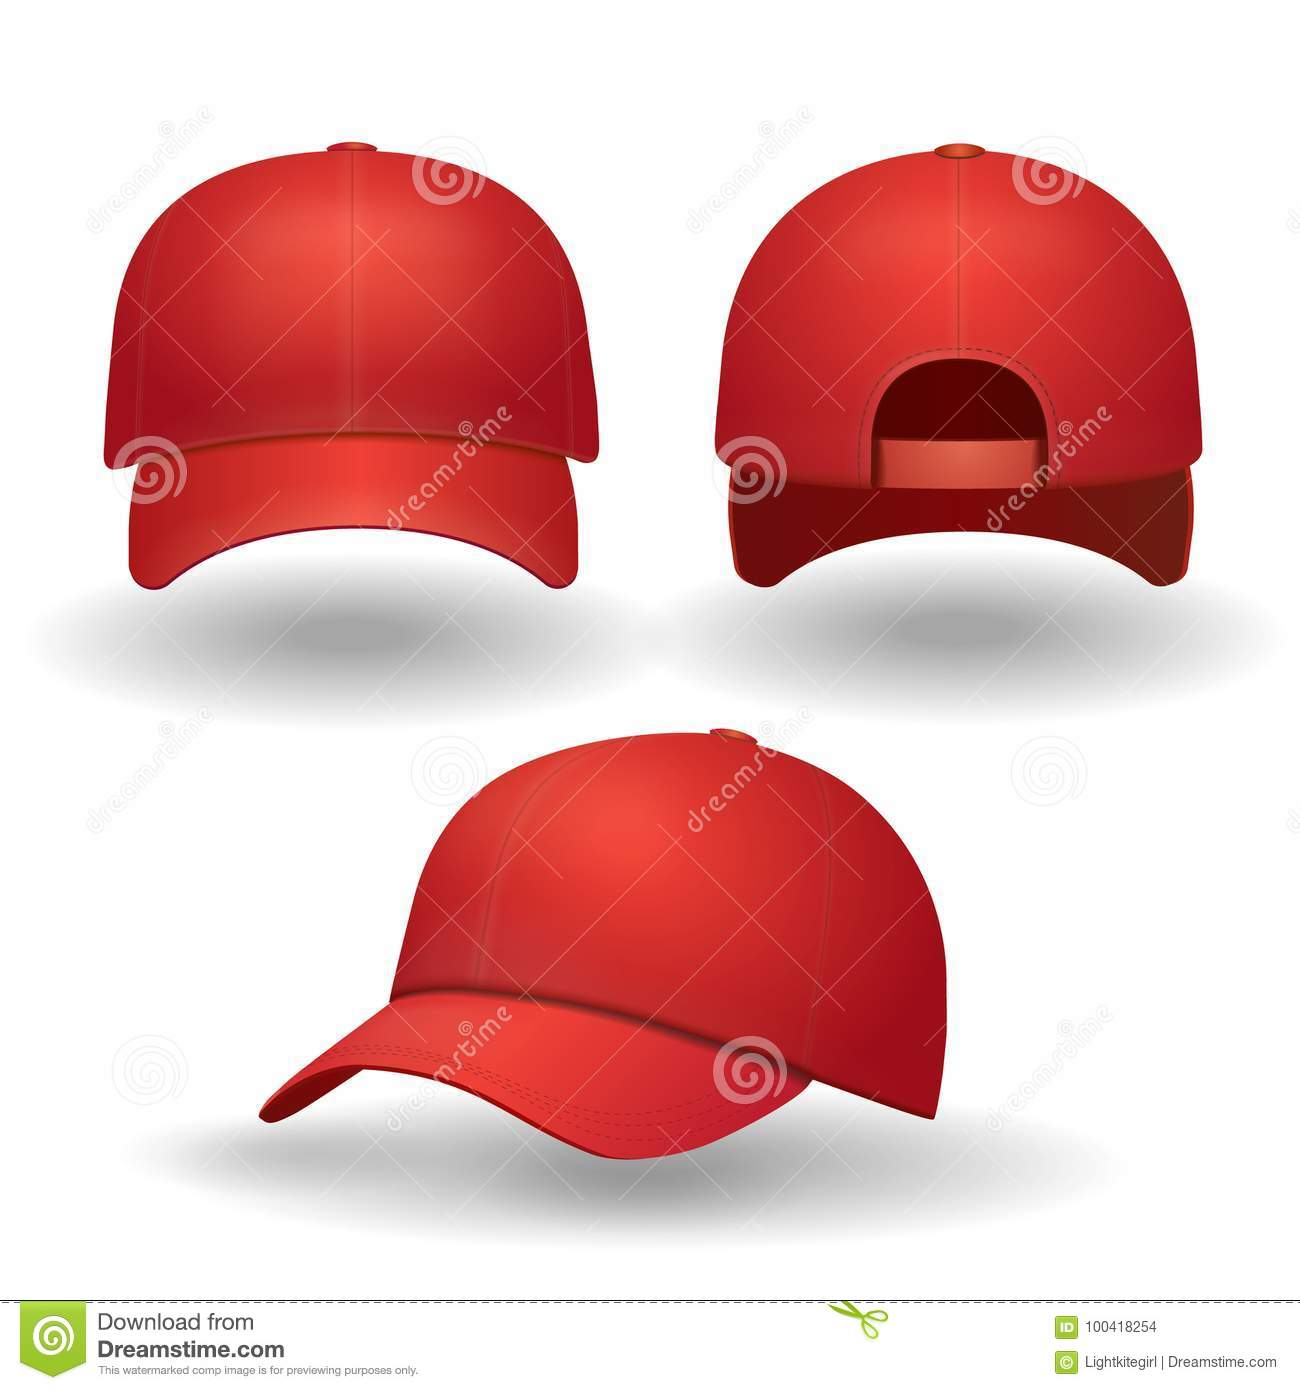 56f19af6b72 Realistic red baseball cap set. Back front and side view isolated 3d vector  illustration.